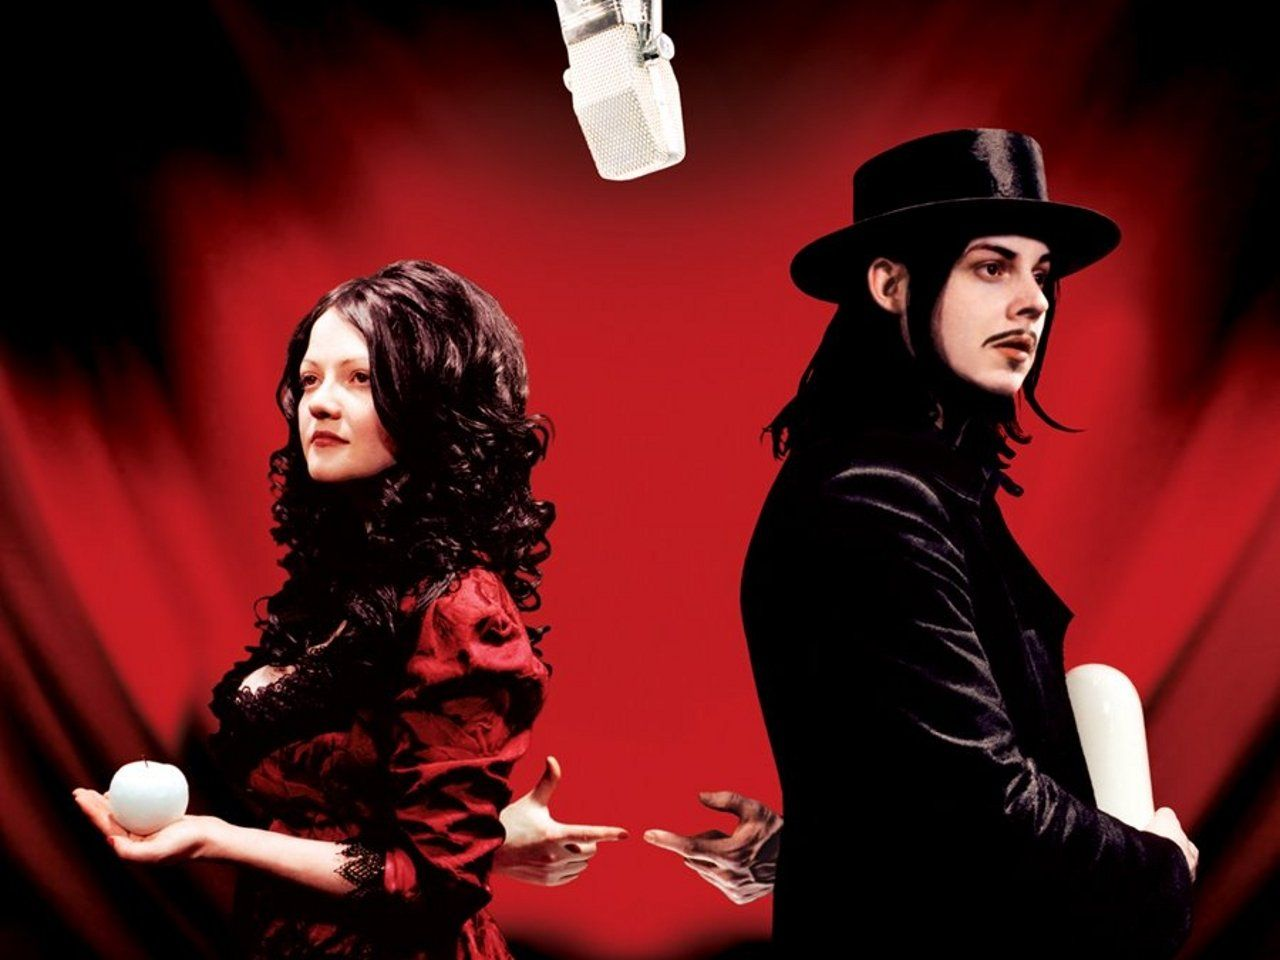 white stripes - Buscar con Google